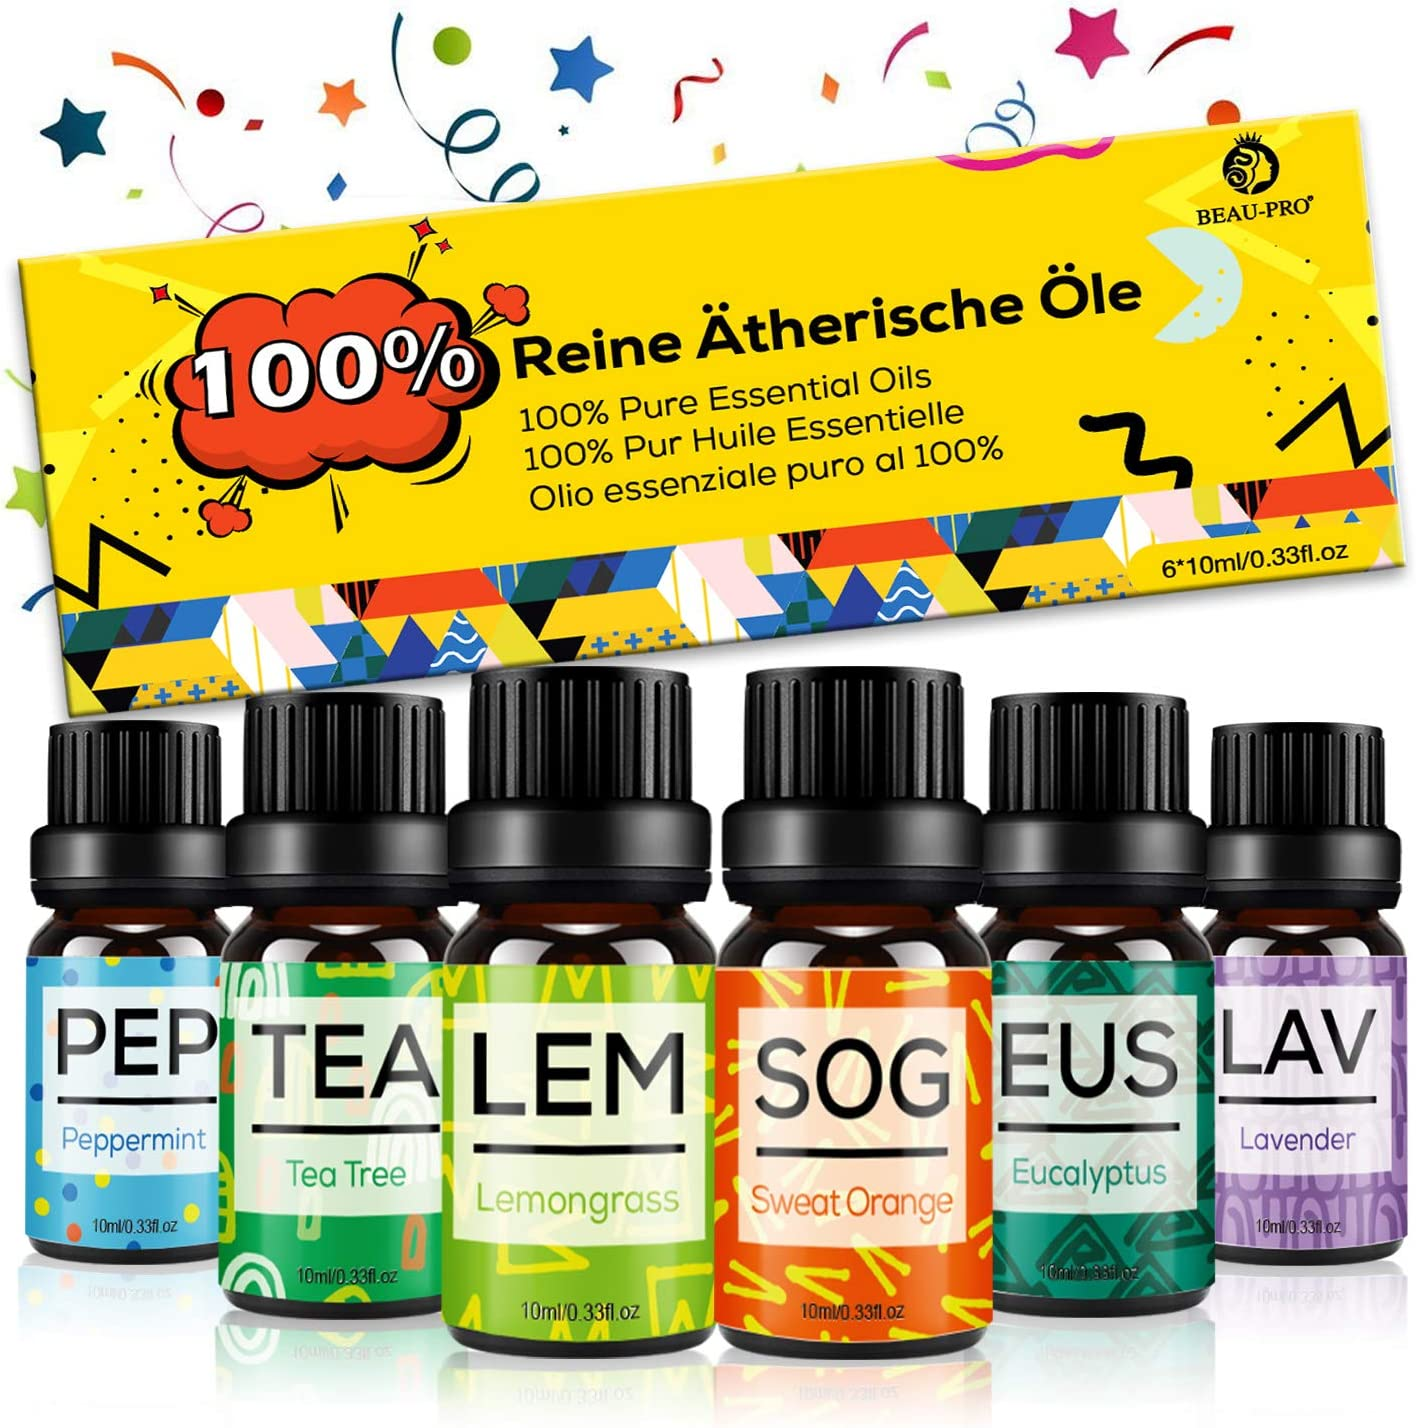 Set de Aceites Esenciales para Difusor,100% Natural Puro Aromaterapia Aceite Aromático,6 x 10 ml Essential Oils Set para Humidificadores, Lámparas de Fragancia,Jabón,SPA,Masaje